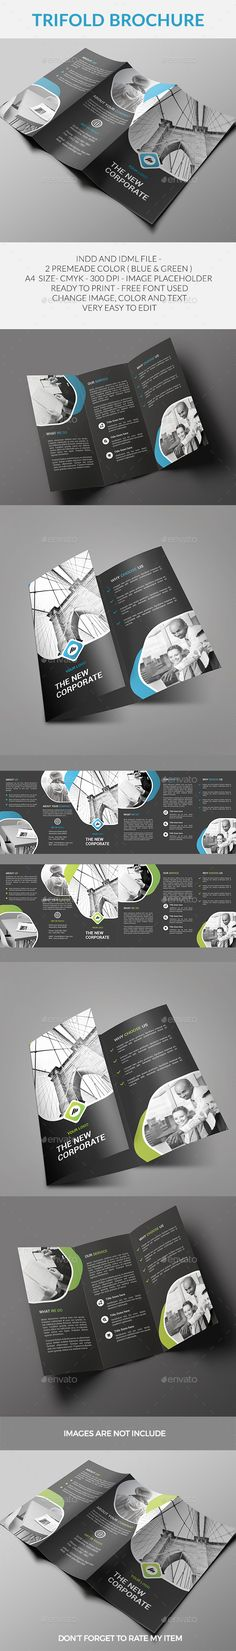 Trifold Brochure - Corporate Brochures Download here: https://graphicriver.net/item/trifold-brochure/20132128?https://graphicriver.net/item/brochure/19300045?ref=classicdesignp